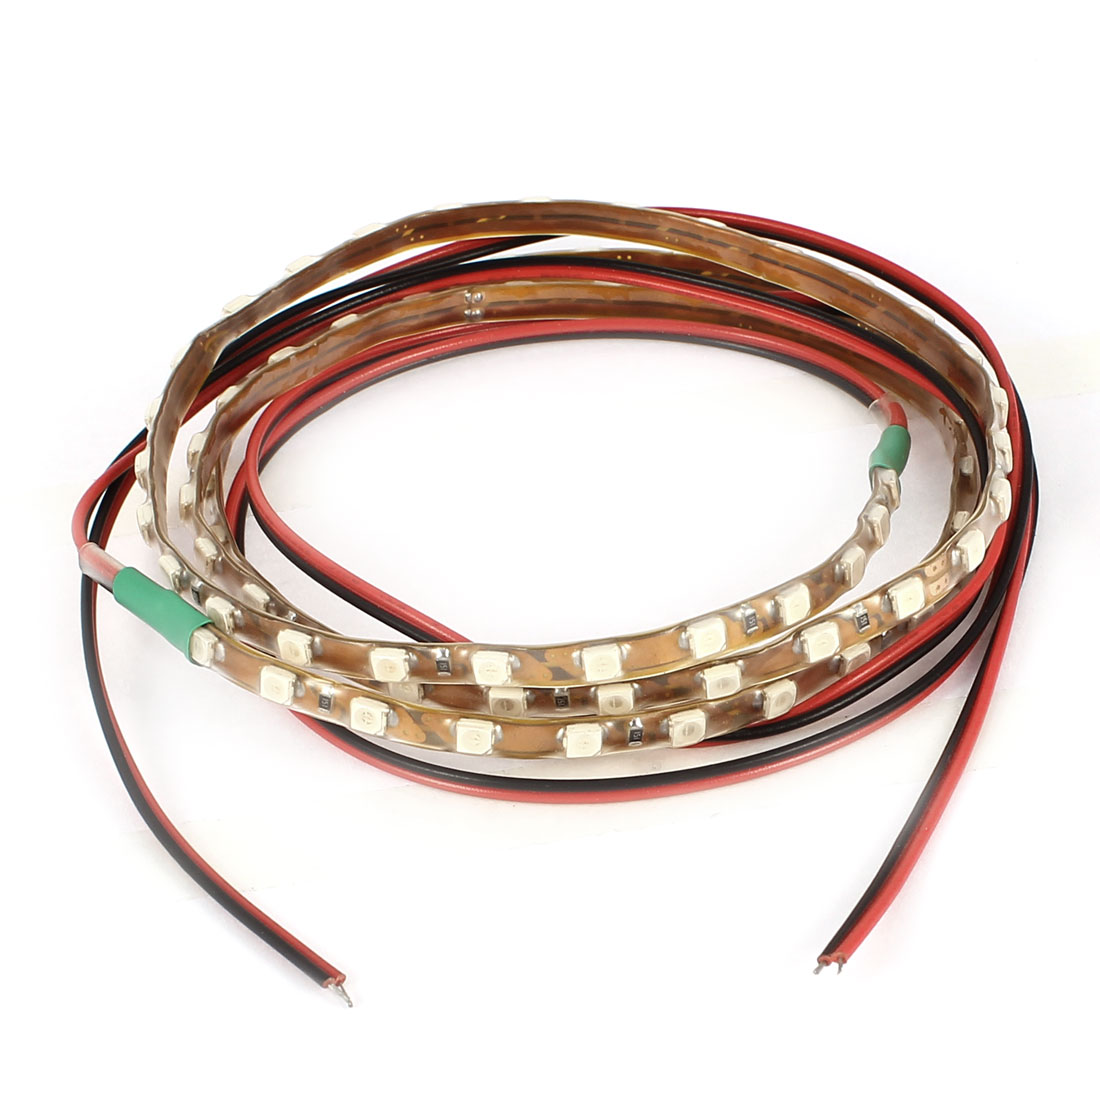 2pcs Green 90 LED 1210 3528 SMD Vehicle Car Flexible Light Strip Decoration 90cm Internal